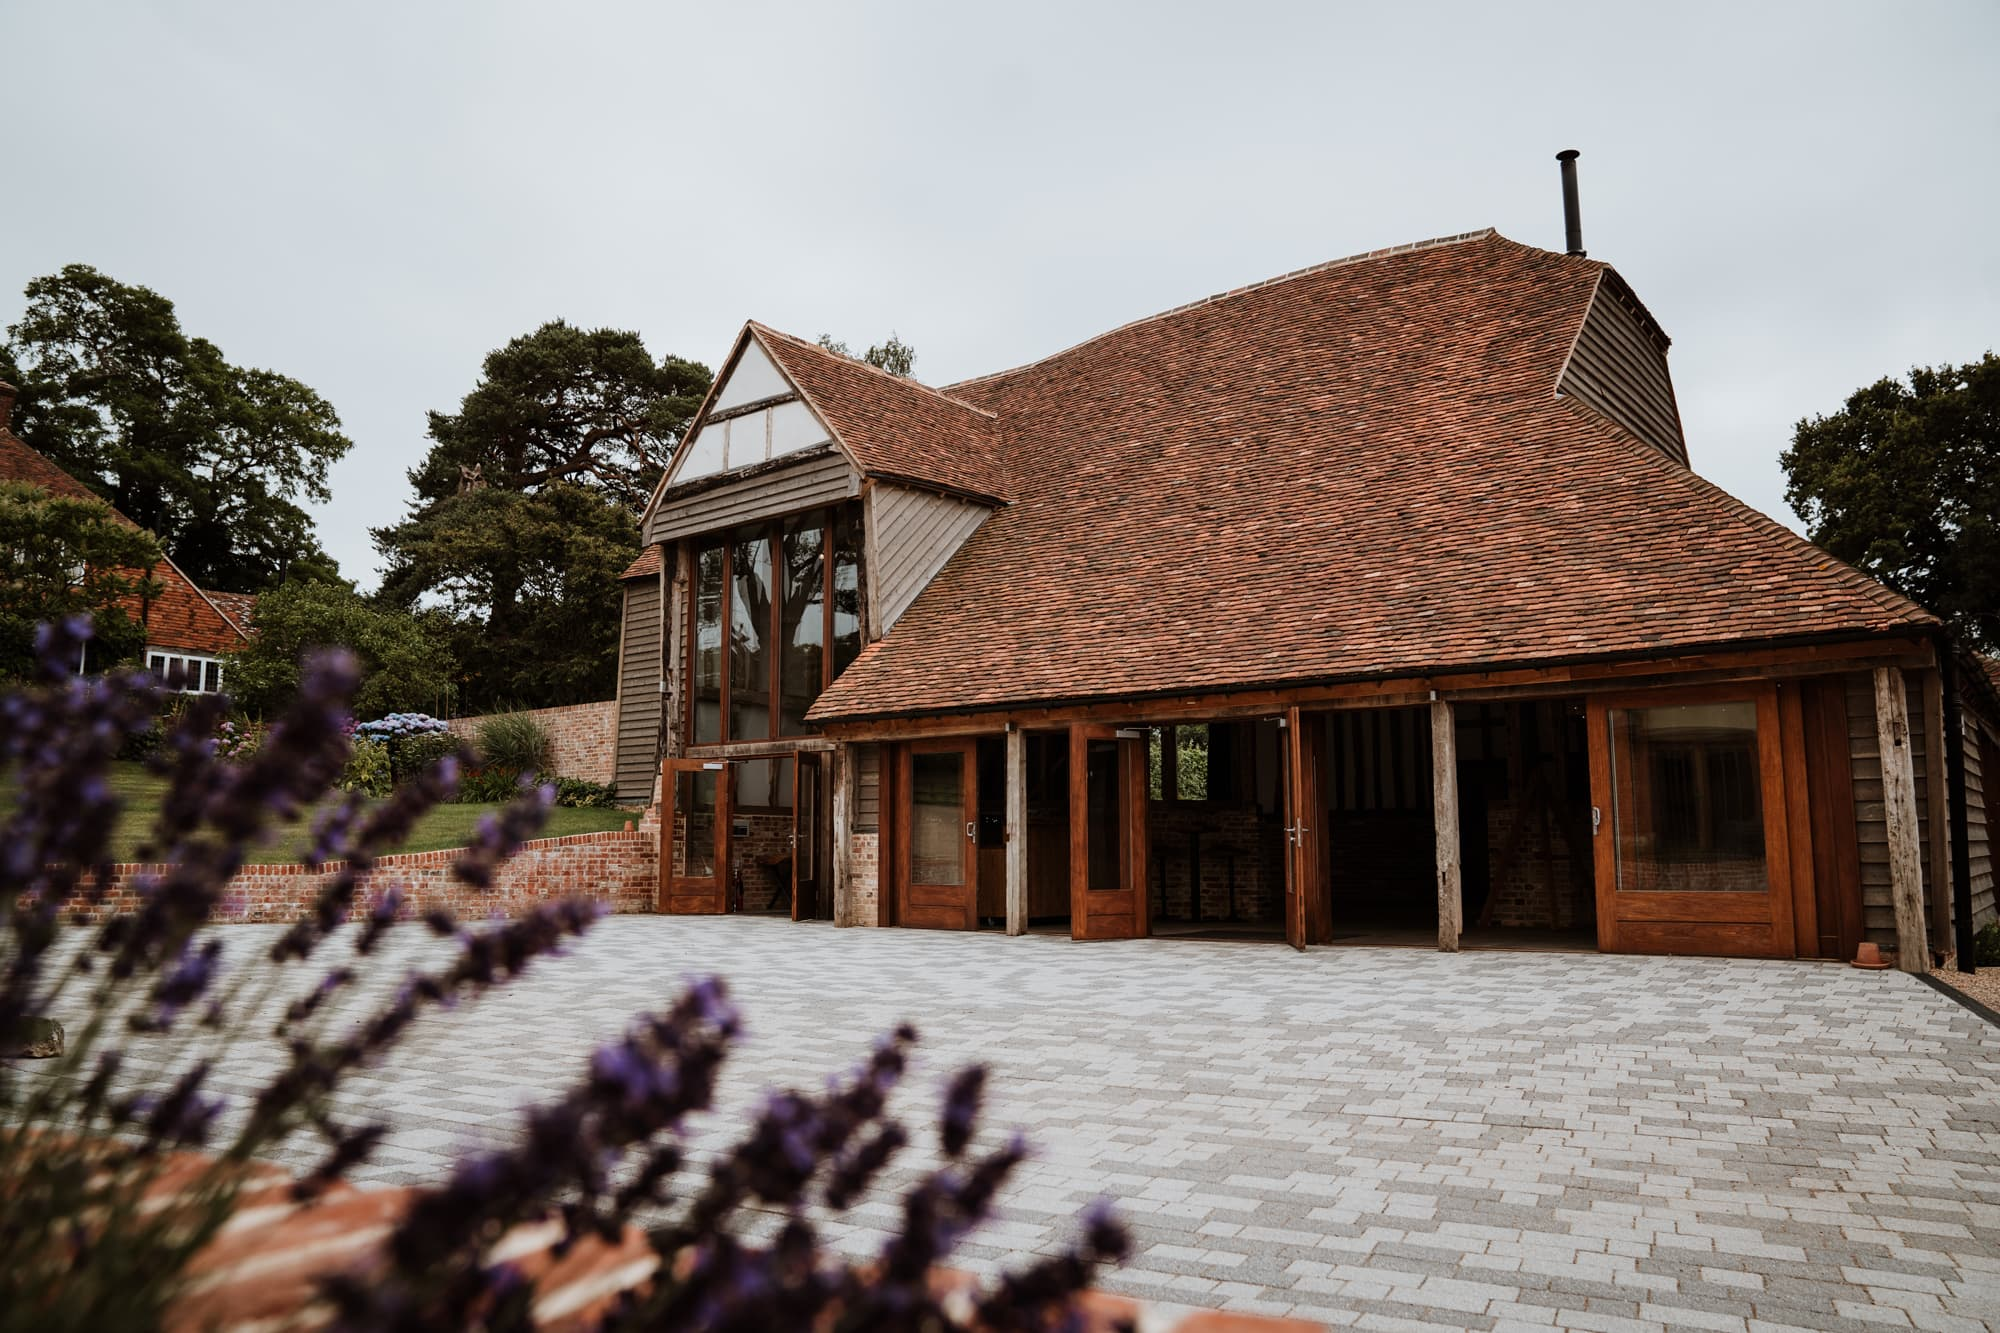 Front of the The Oak Barn viewed through lavender